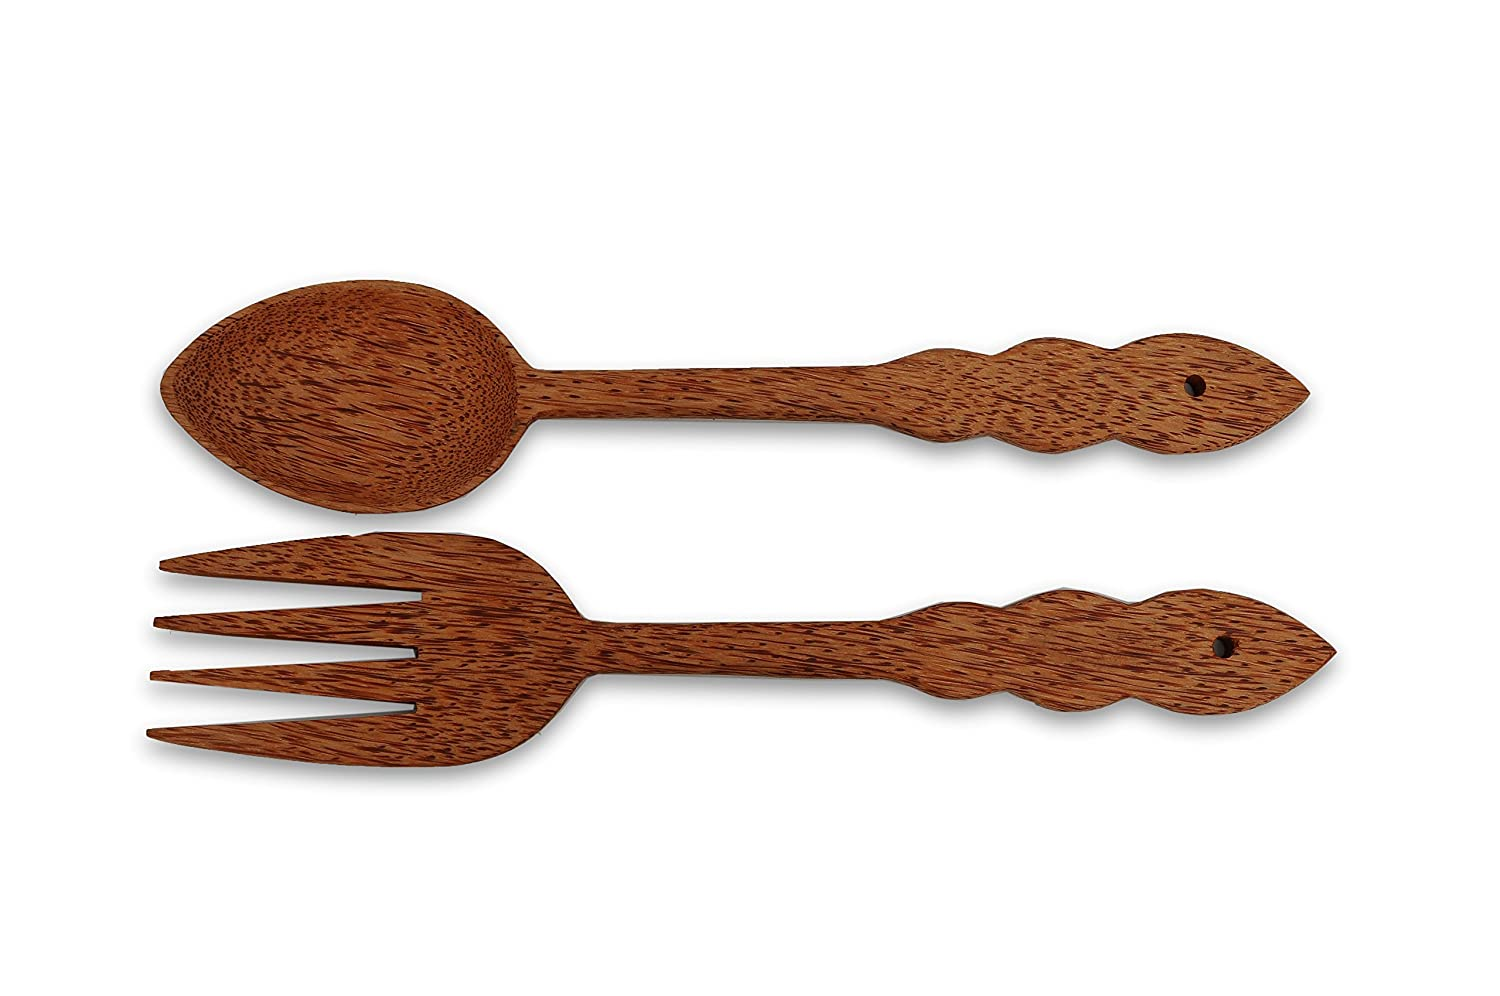 VietsWay Handmade Coconut Wood Giant Fork & Spoon Set Wall Kitchen Home Décor